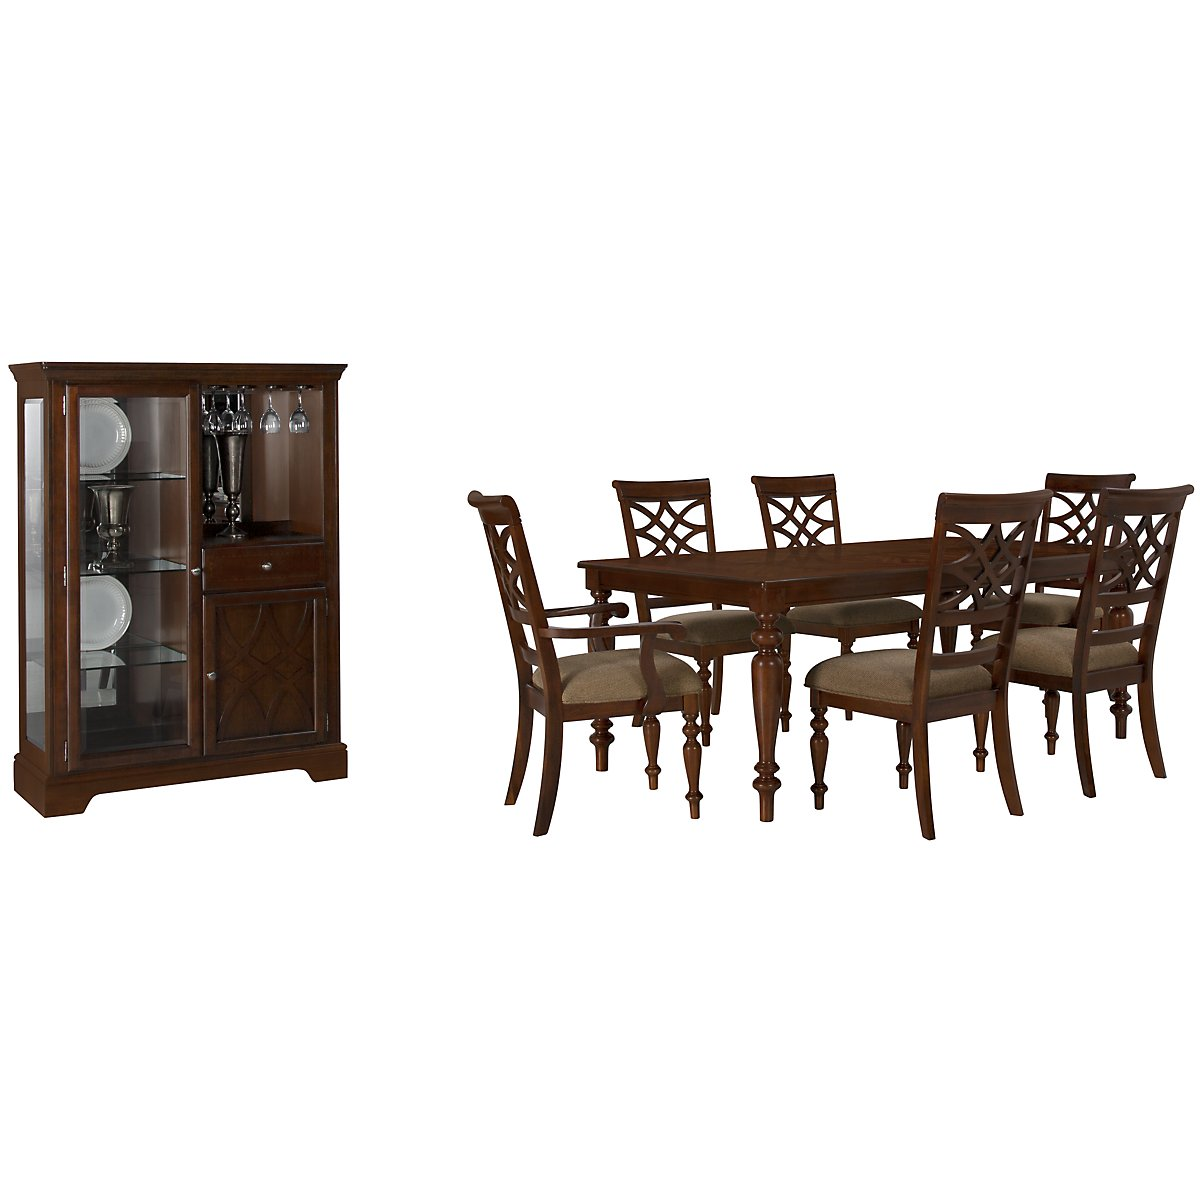 Rectangle Dining Room Tables City Furniture Oxford Mid Tone Rectangular Table 4 Chairs